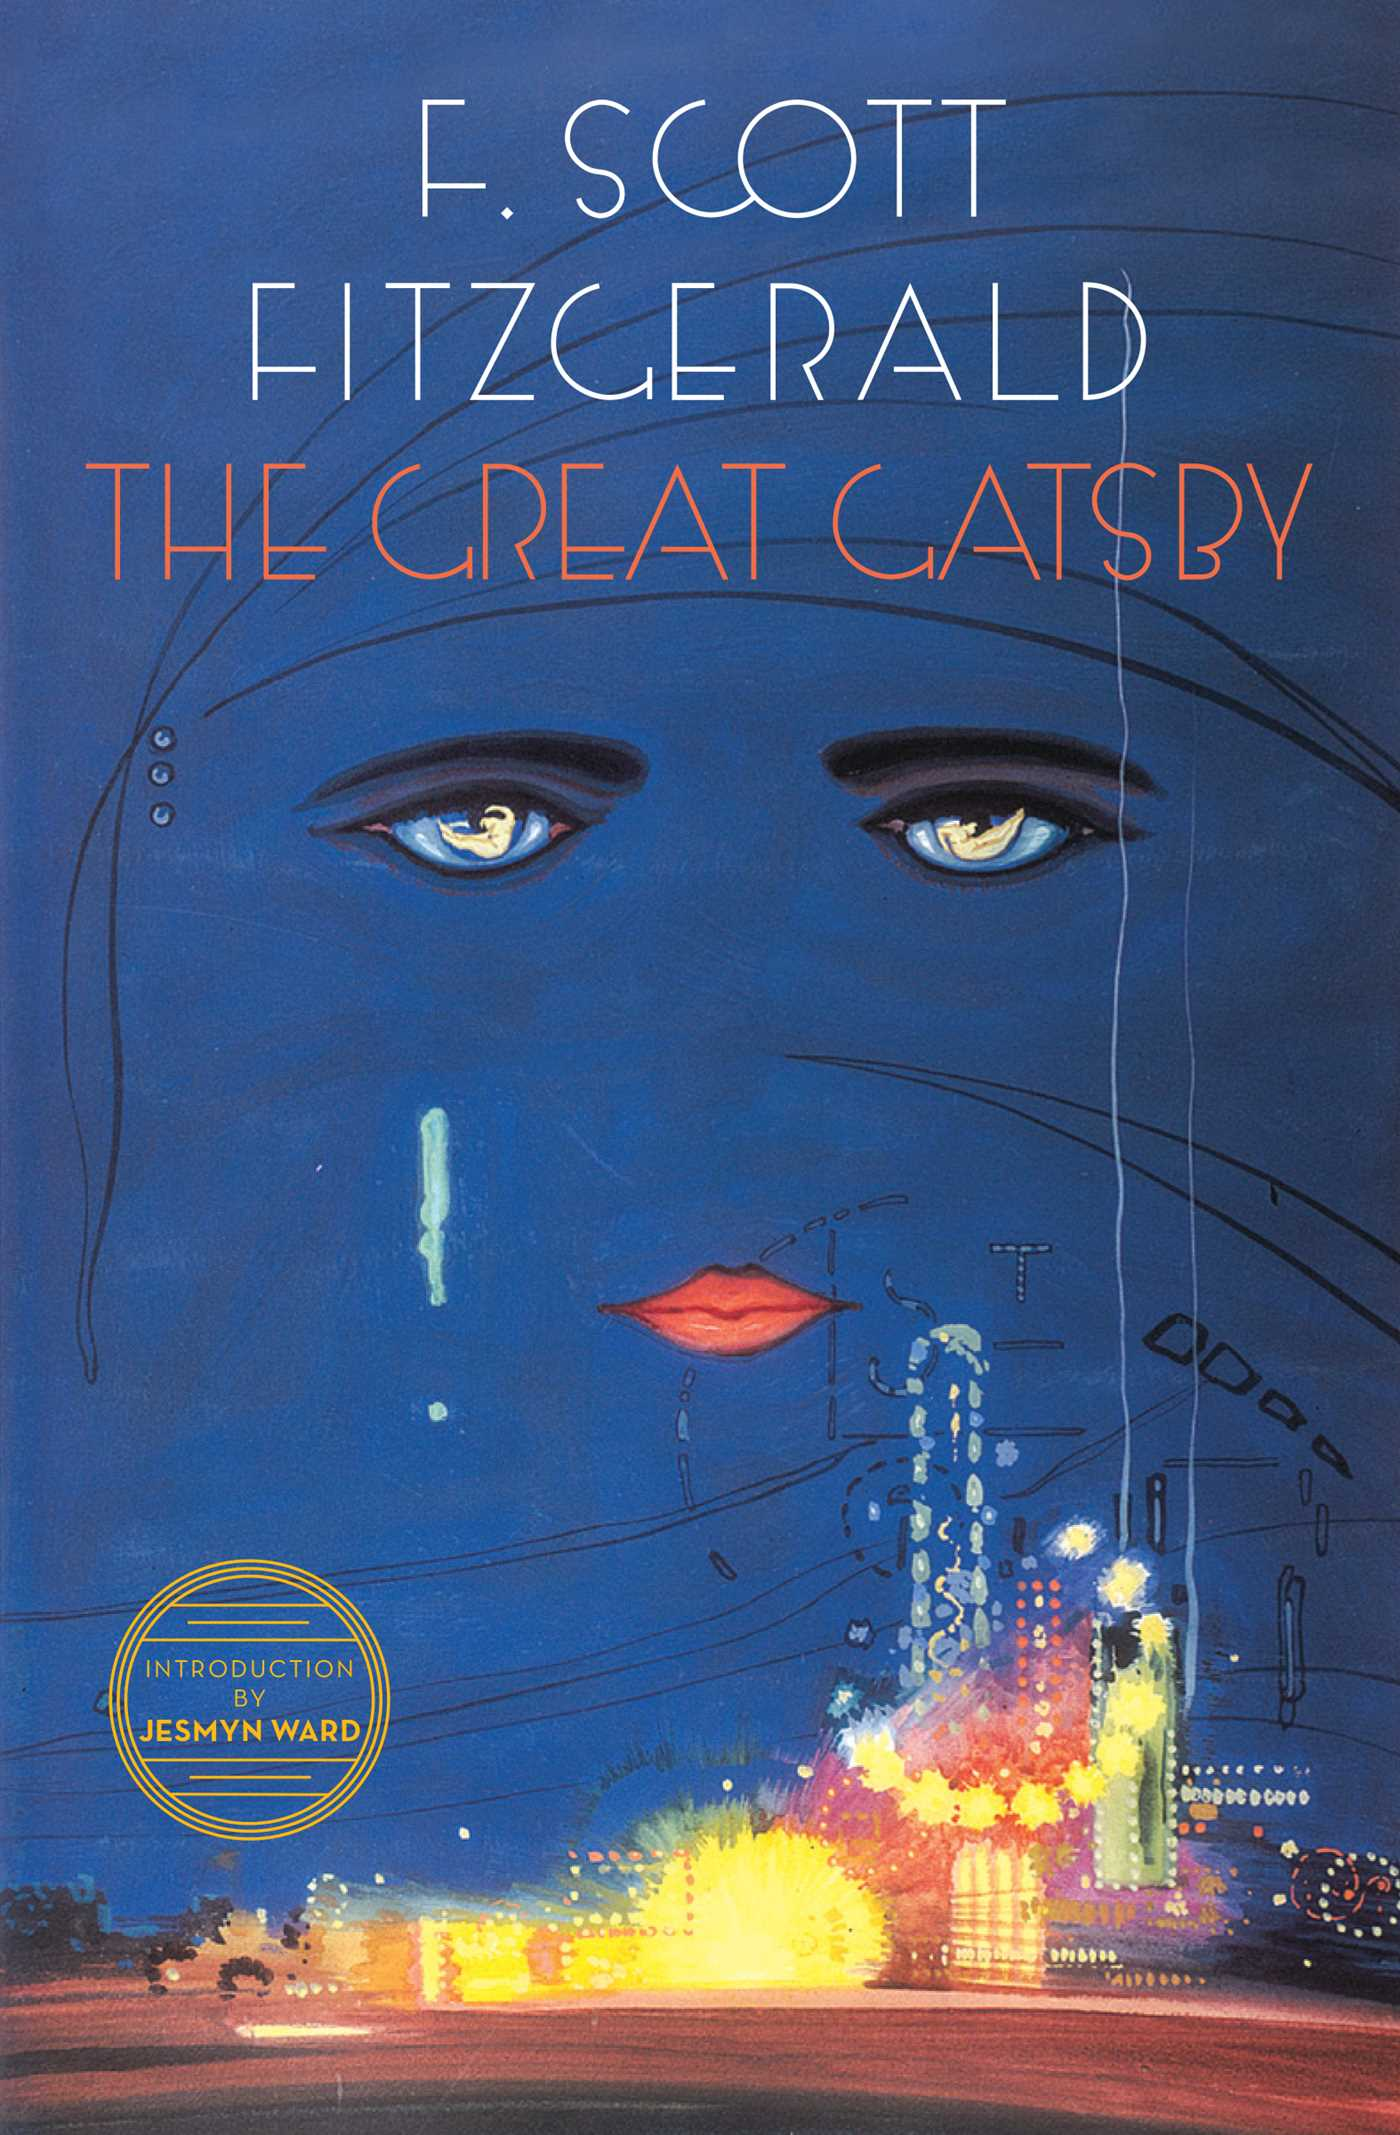 026 Essay Example The Great Gatsby Topics 9780743273565 Hr Exceptional Literary Question Chapter 1 Full